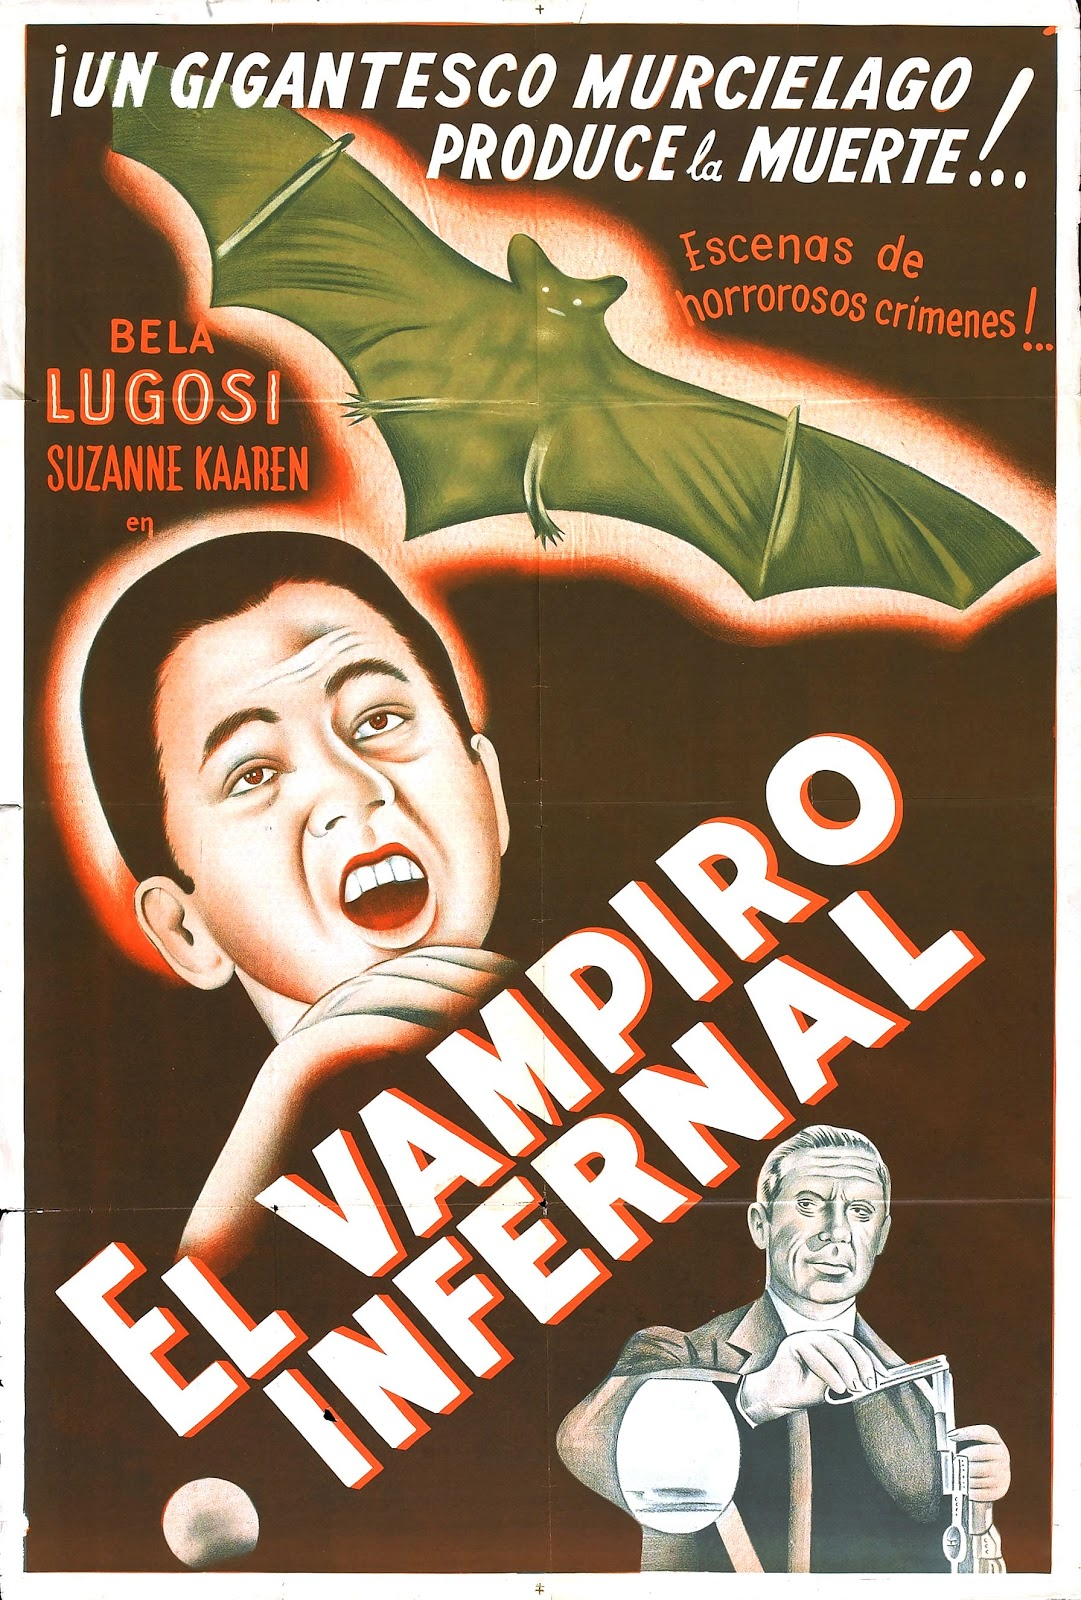 The Devil Bat Foreign Film Poster